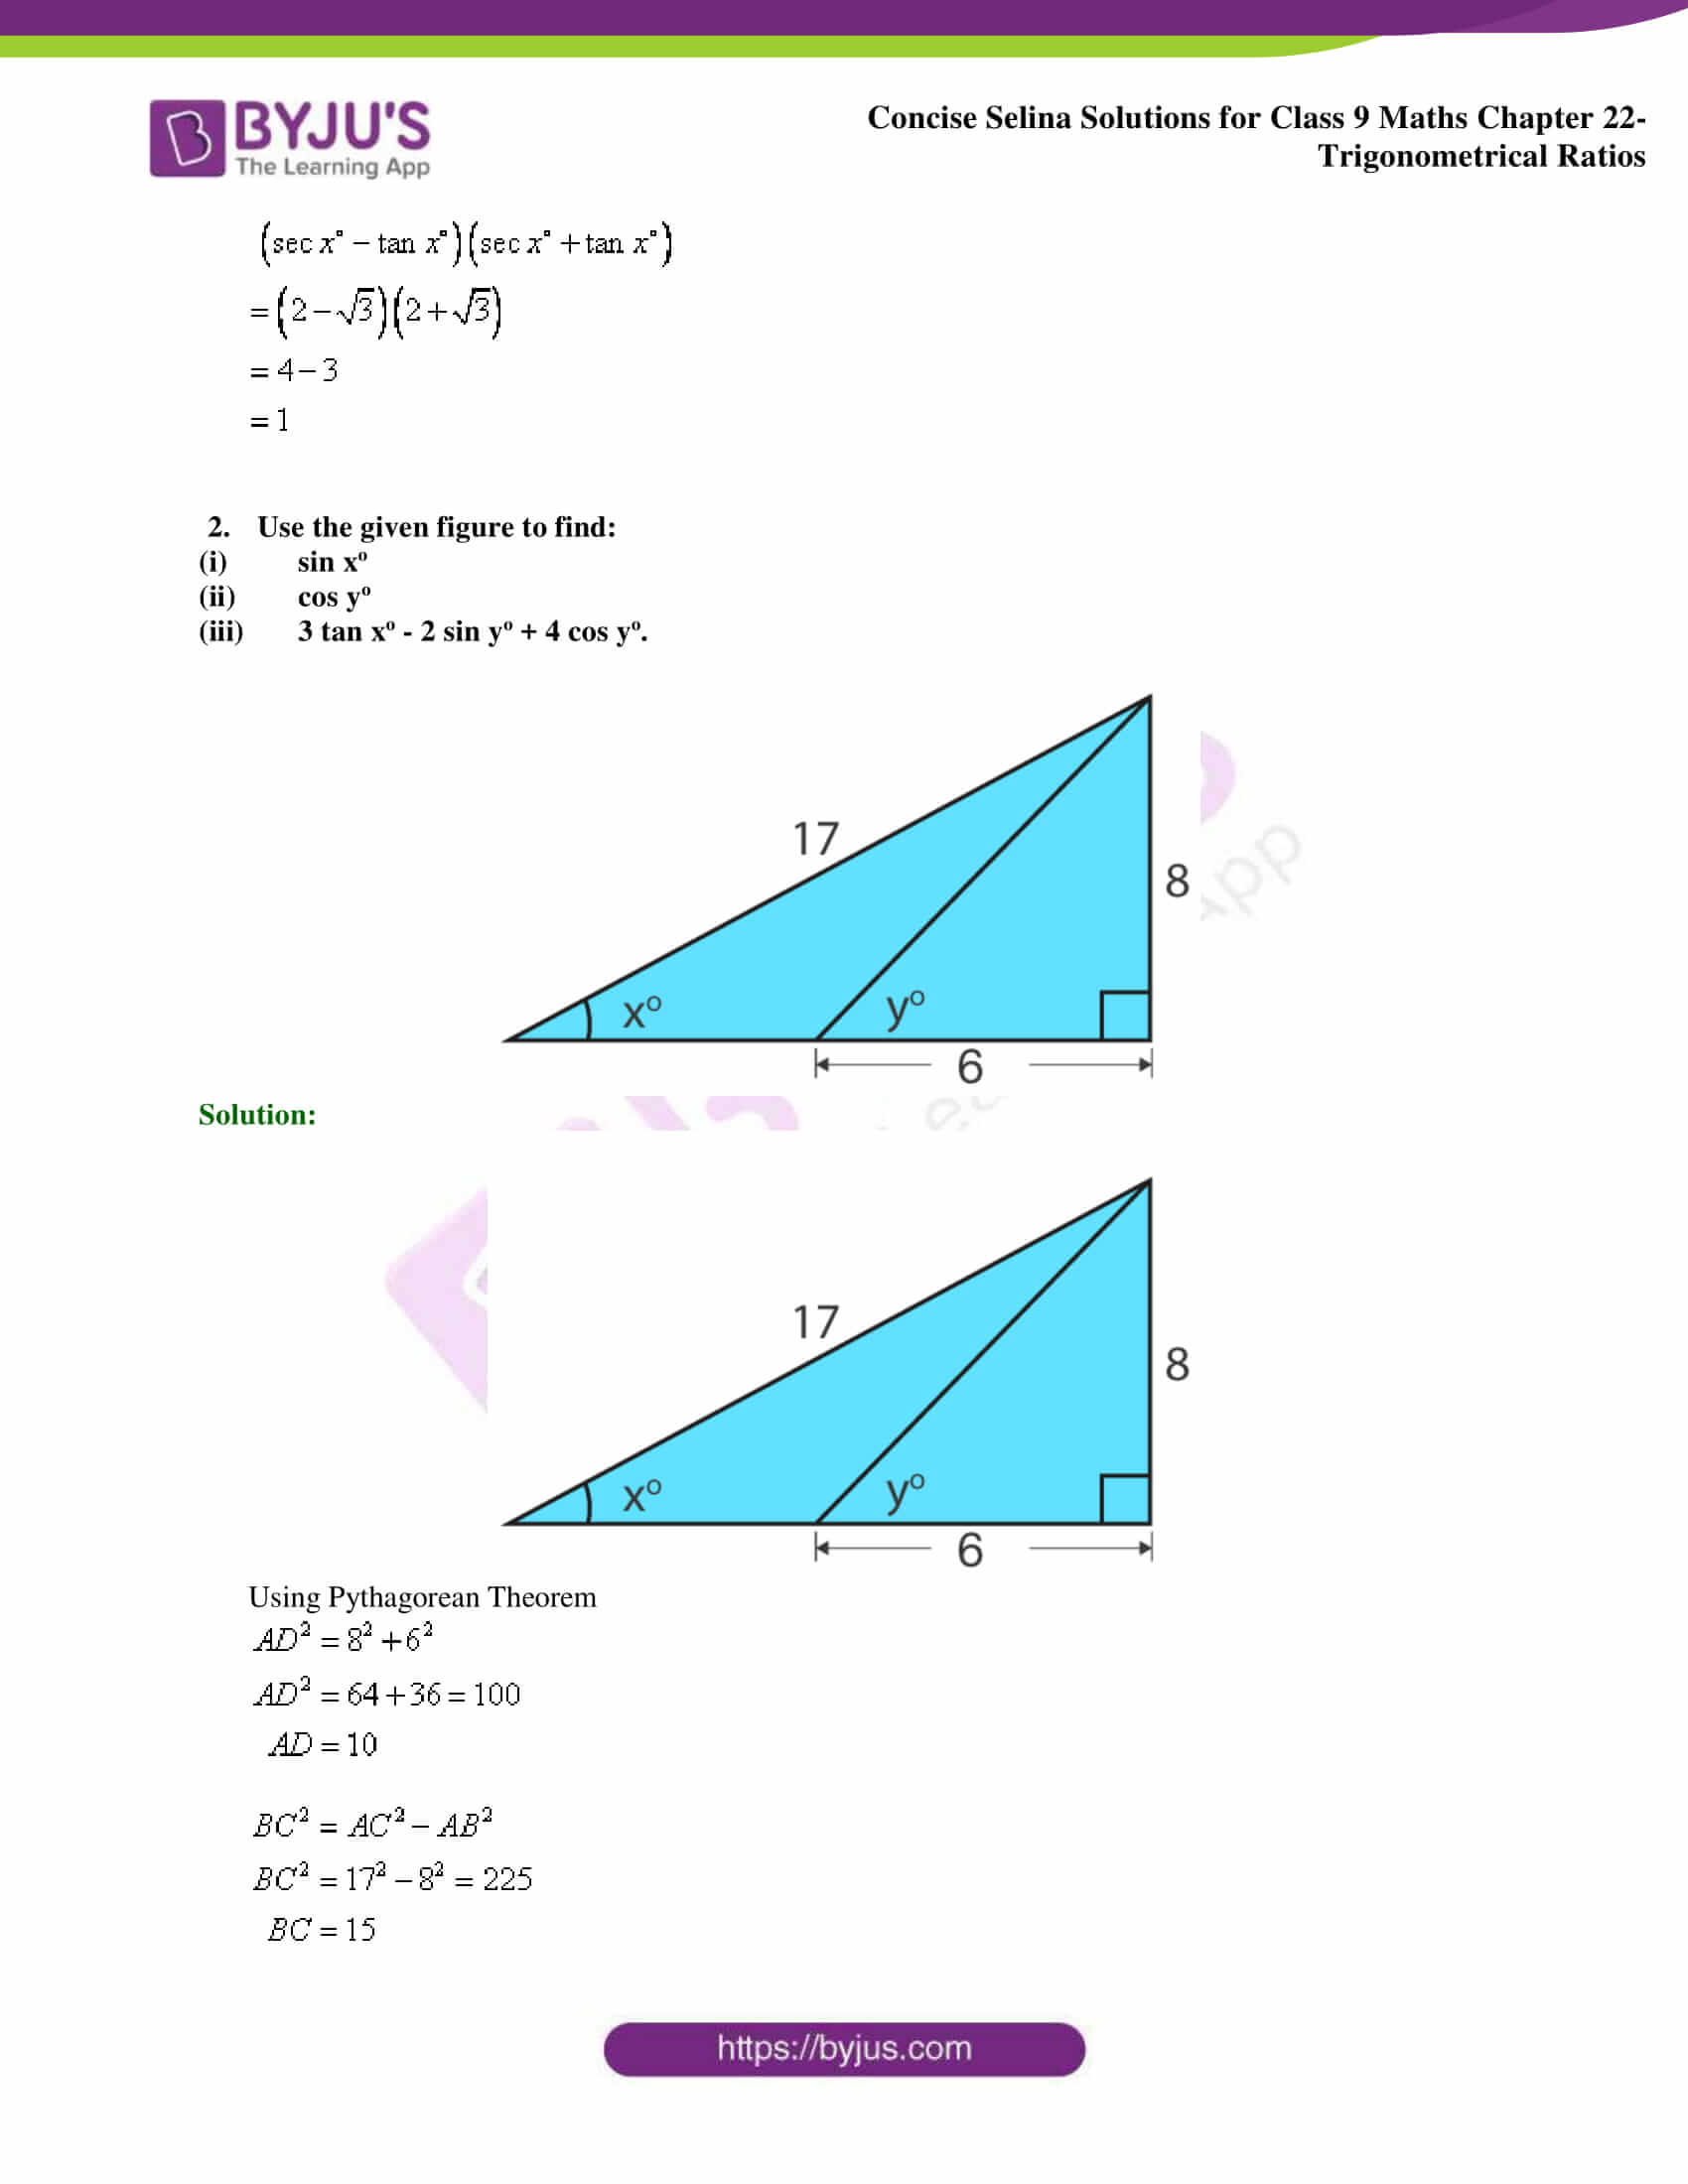 Concise Selina Solutions Class 9 Maths Chapter 22 Trigonometrical Ratios part 23